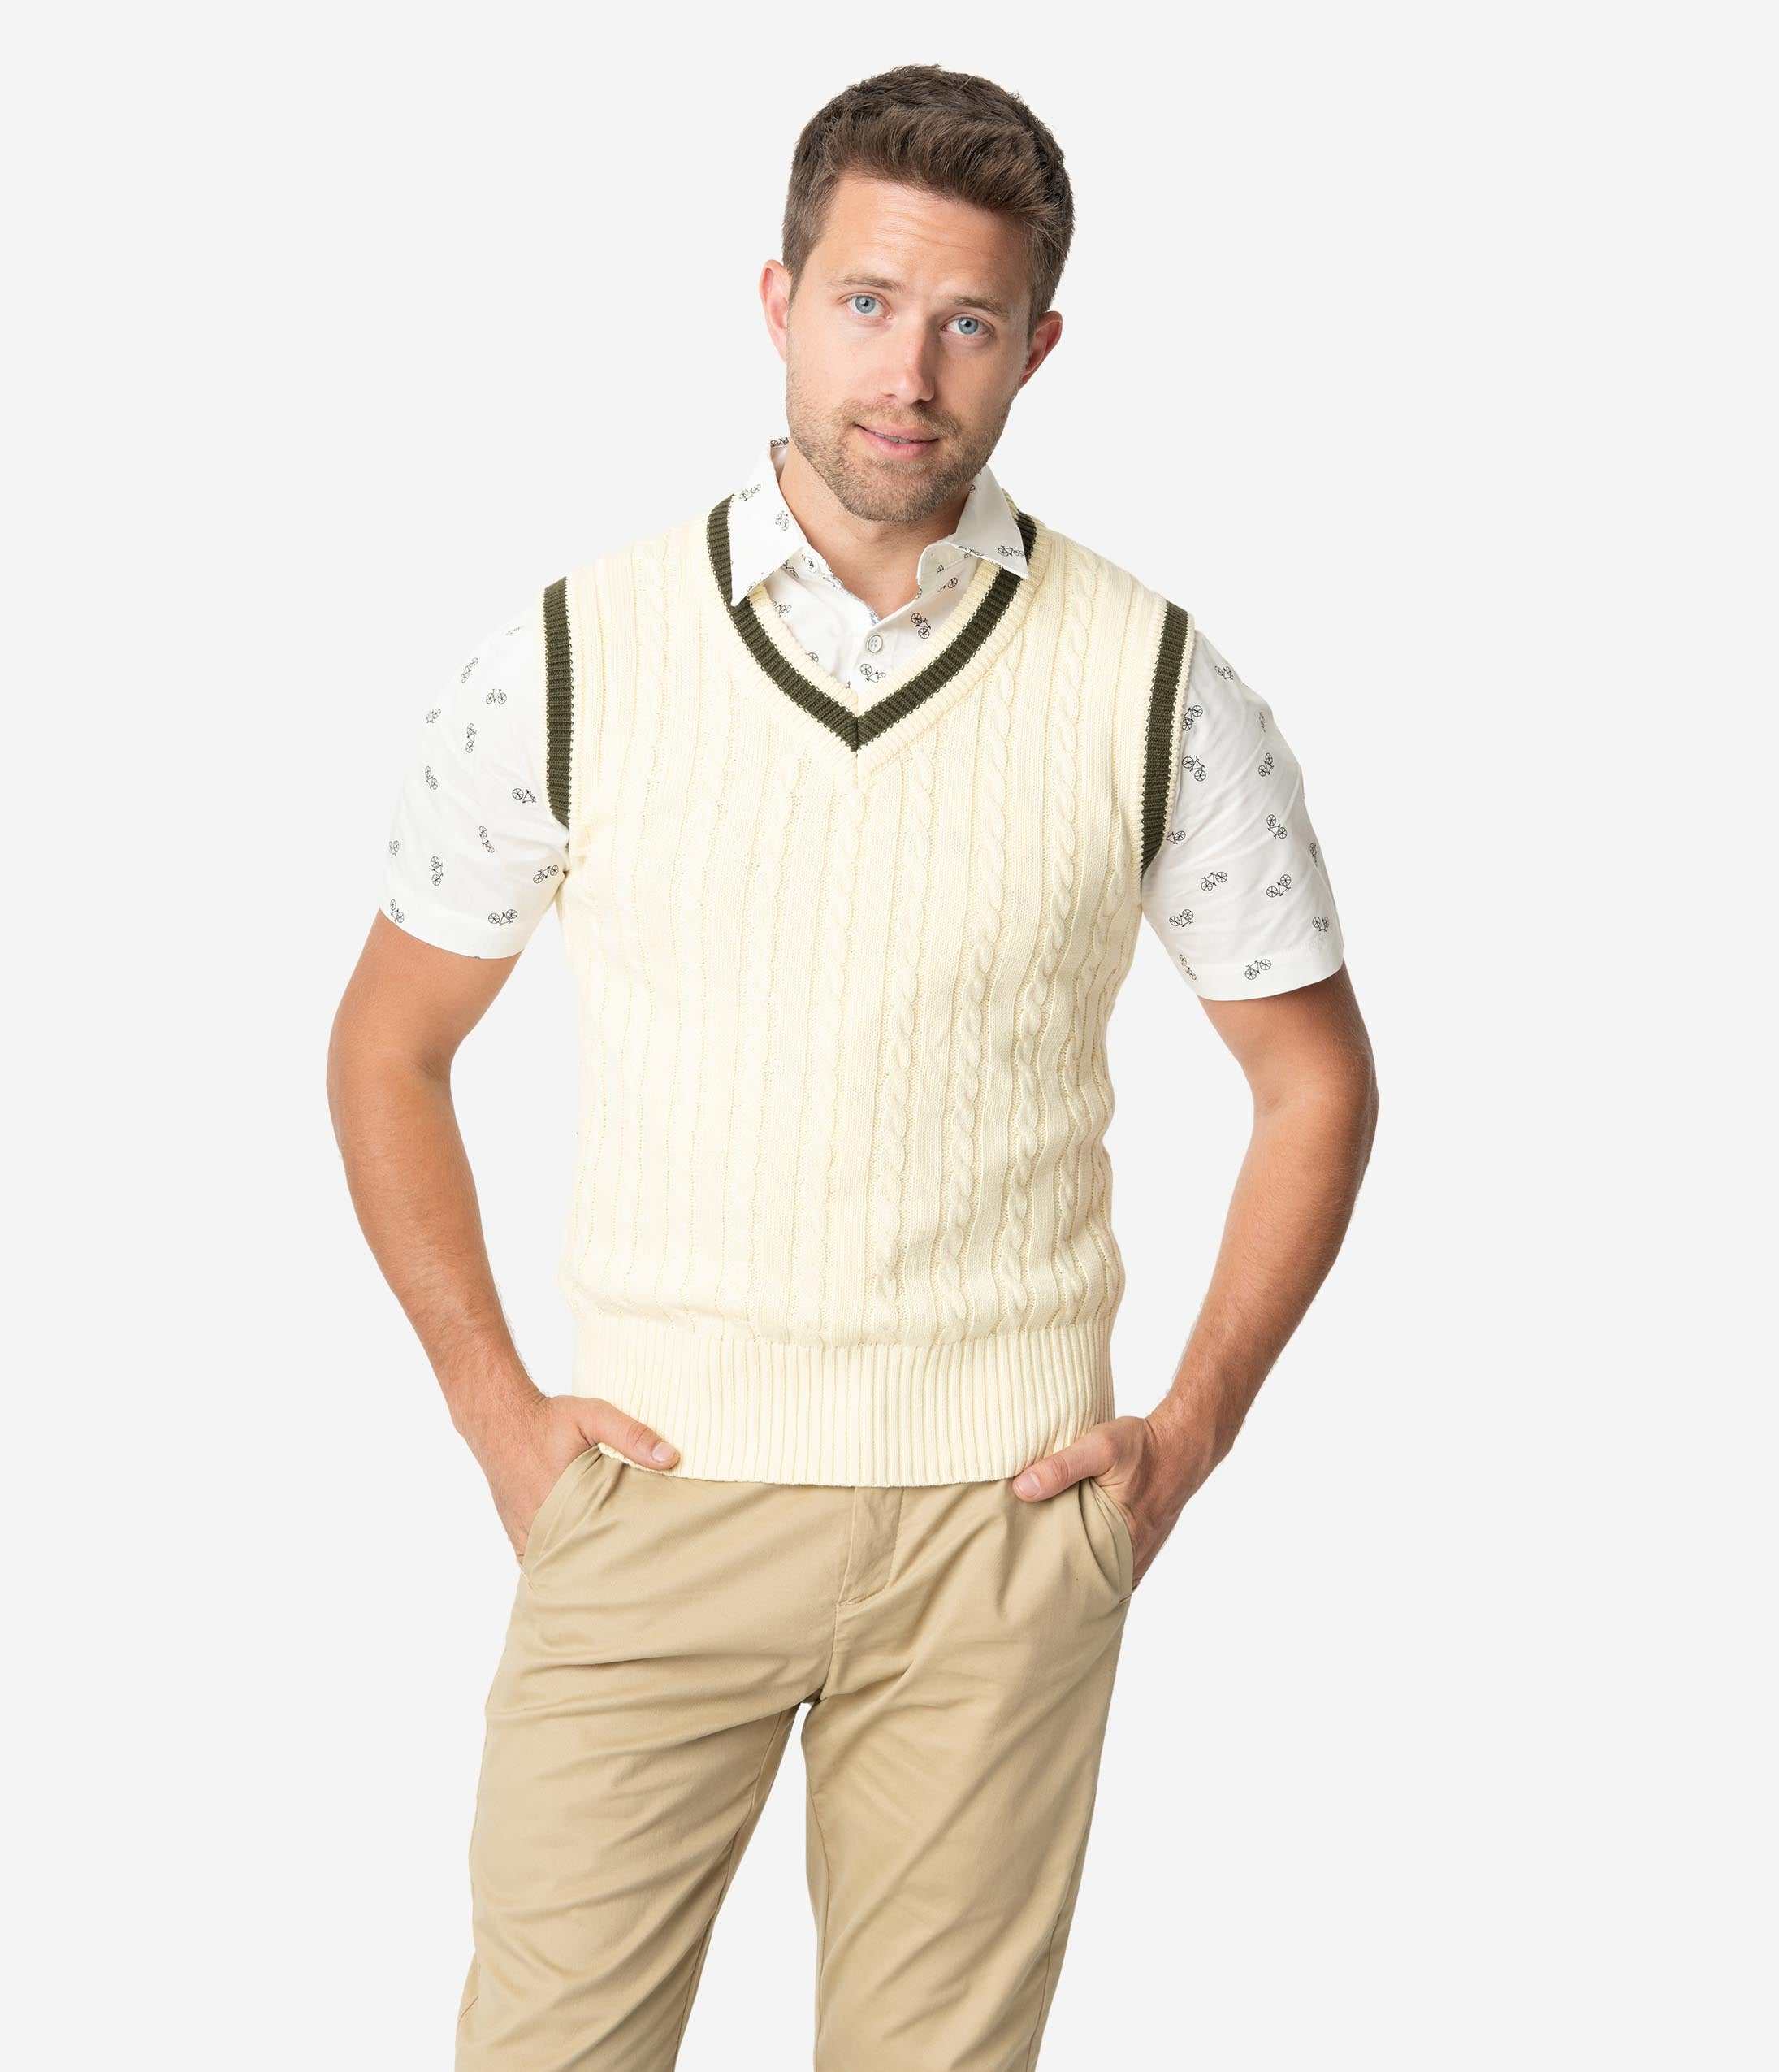 Great Gatsby White Suit- Get the Leonardo DiCaprio Look Collectif 1950S Cream Cable Knit Alex Mens Sweater Vest $48.00 AT vintagedancer.com